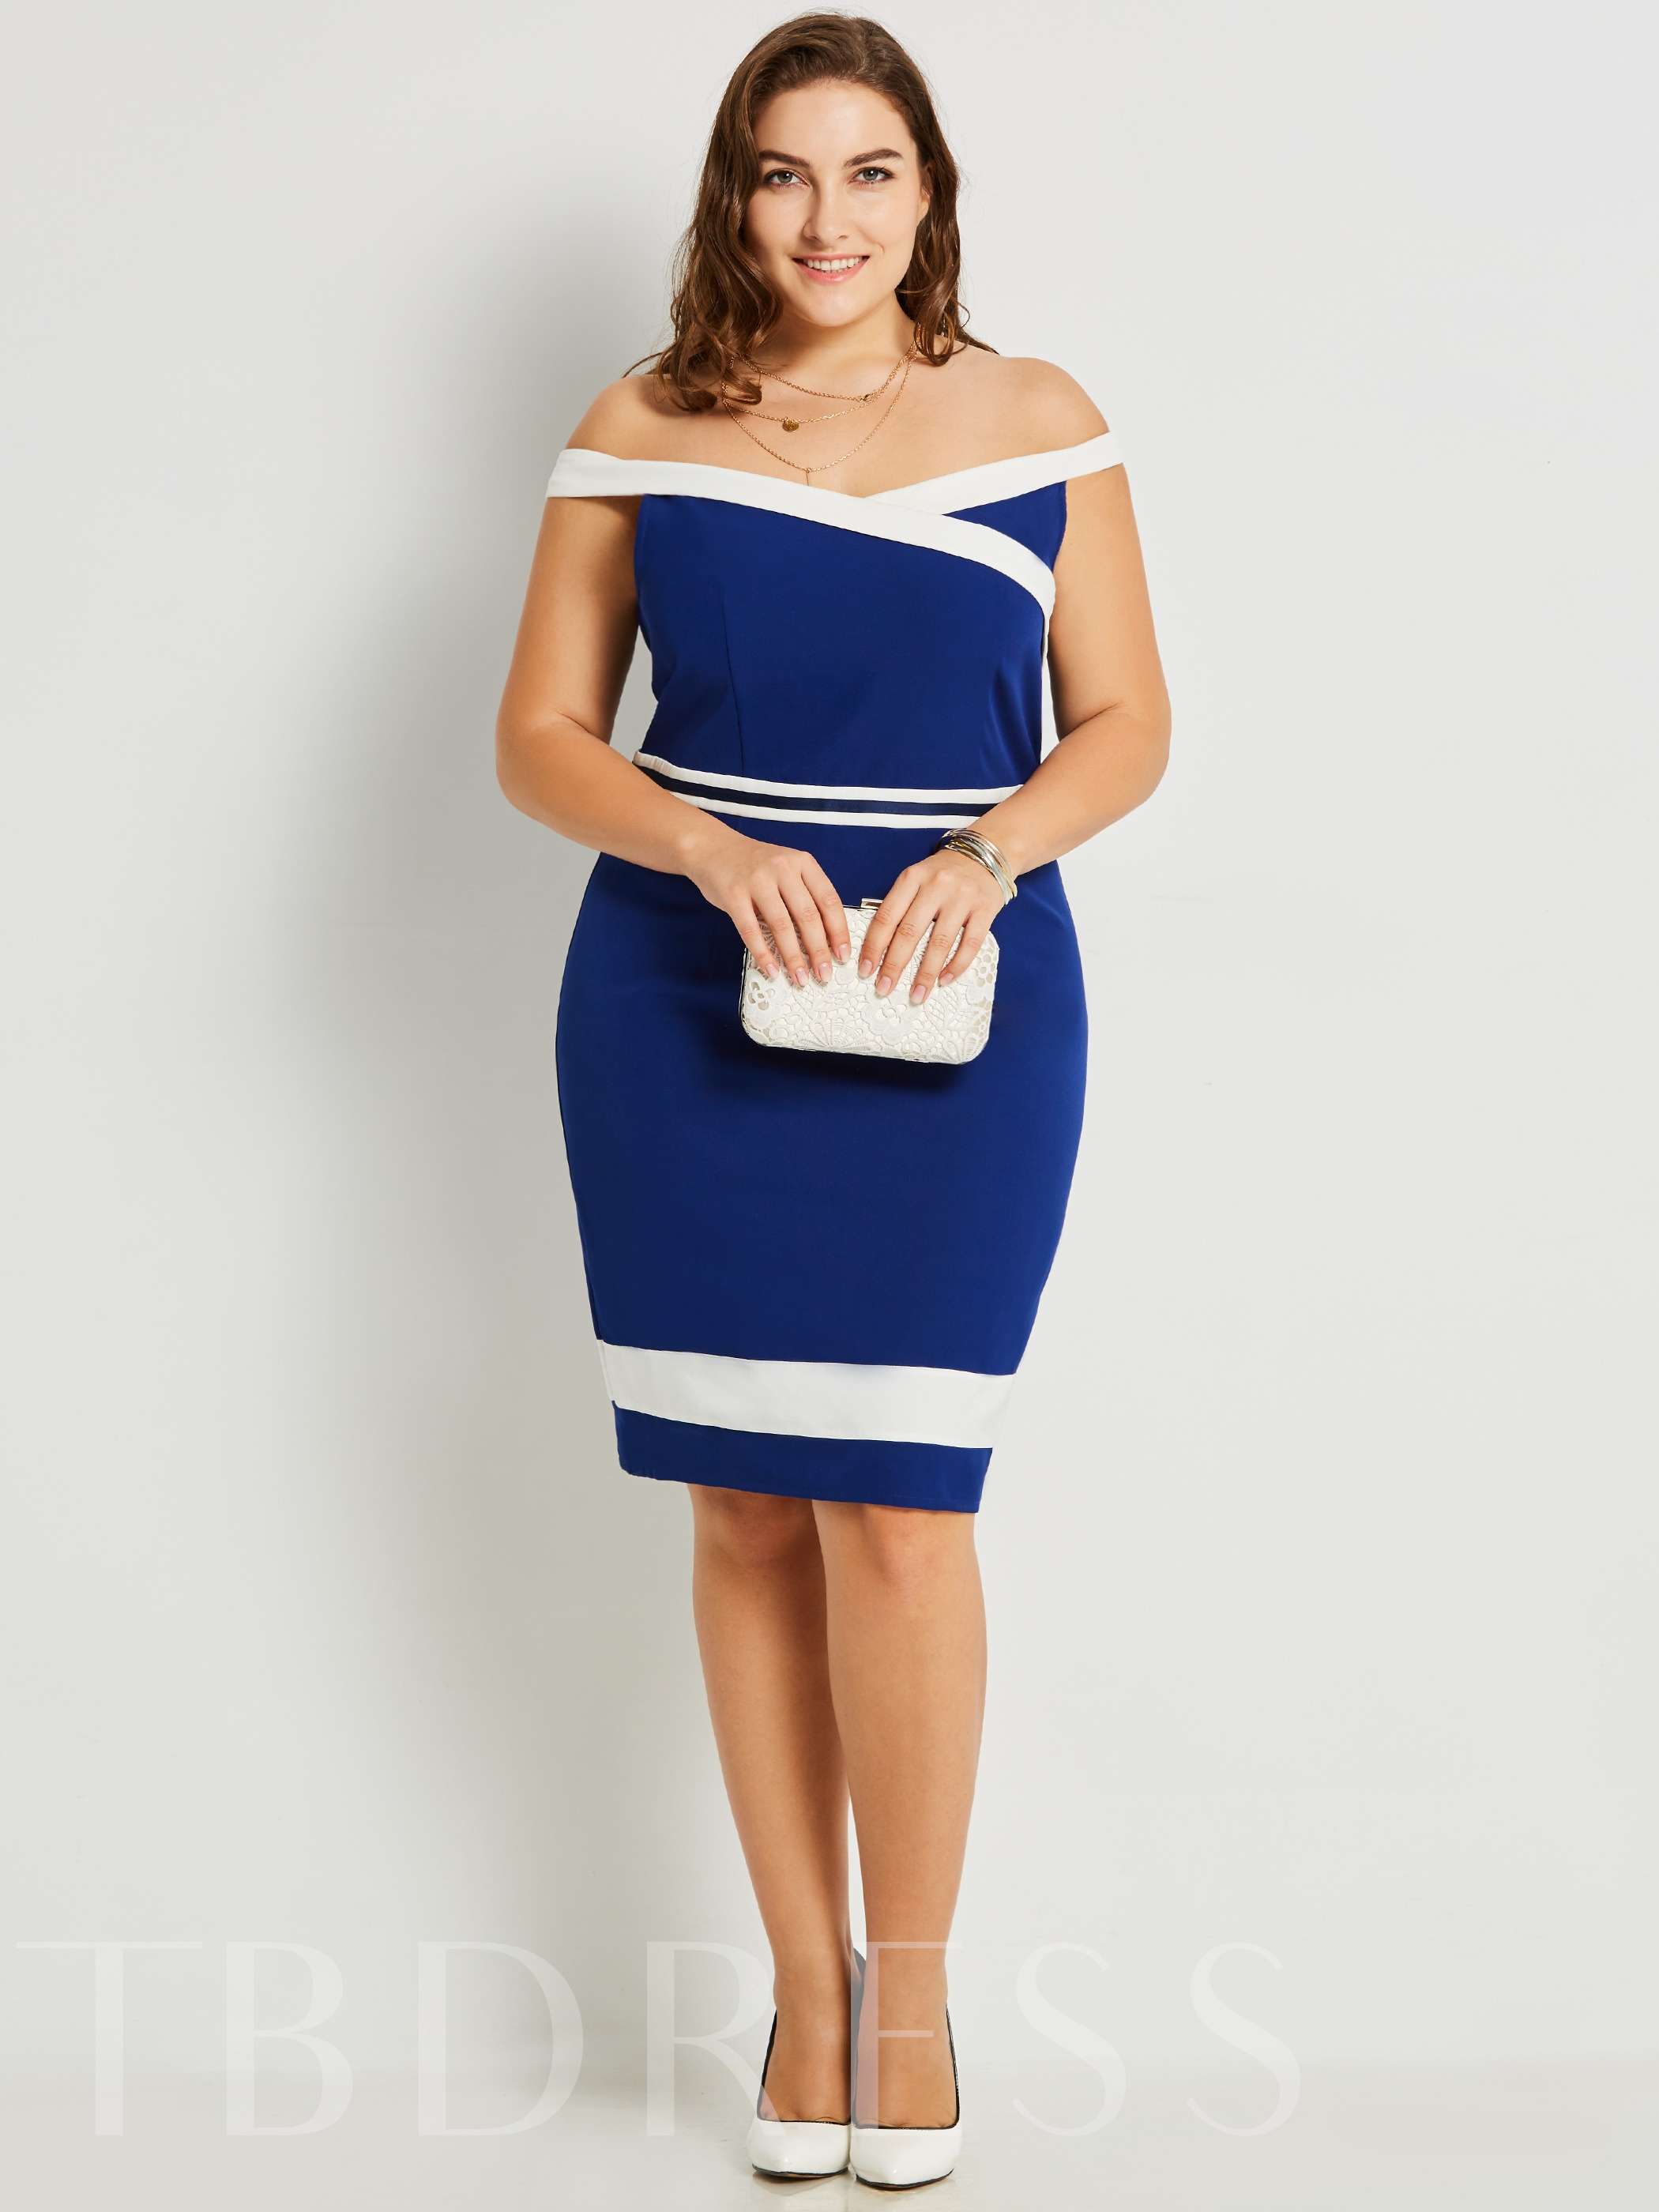 Buy Blue Invisible Zipper Plus Size Women's Bodycon Dress, Plusee, 12966958 for $26.99 in TBDress store